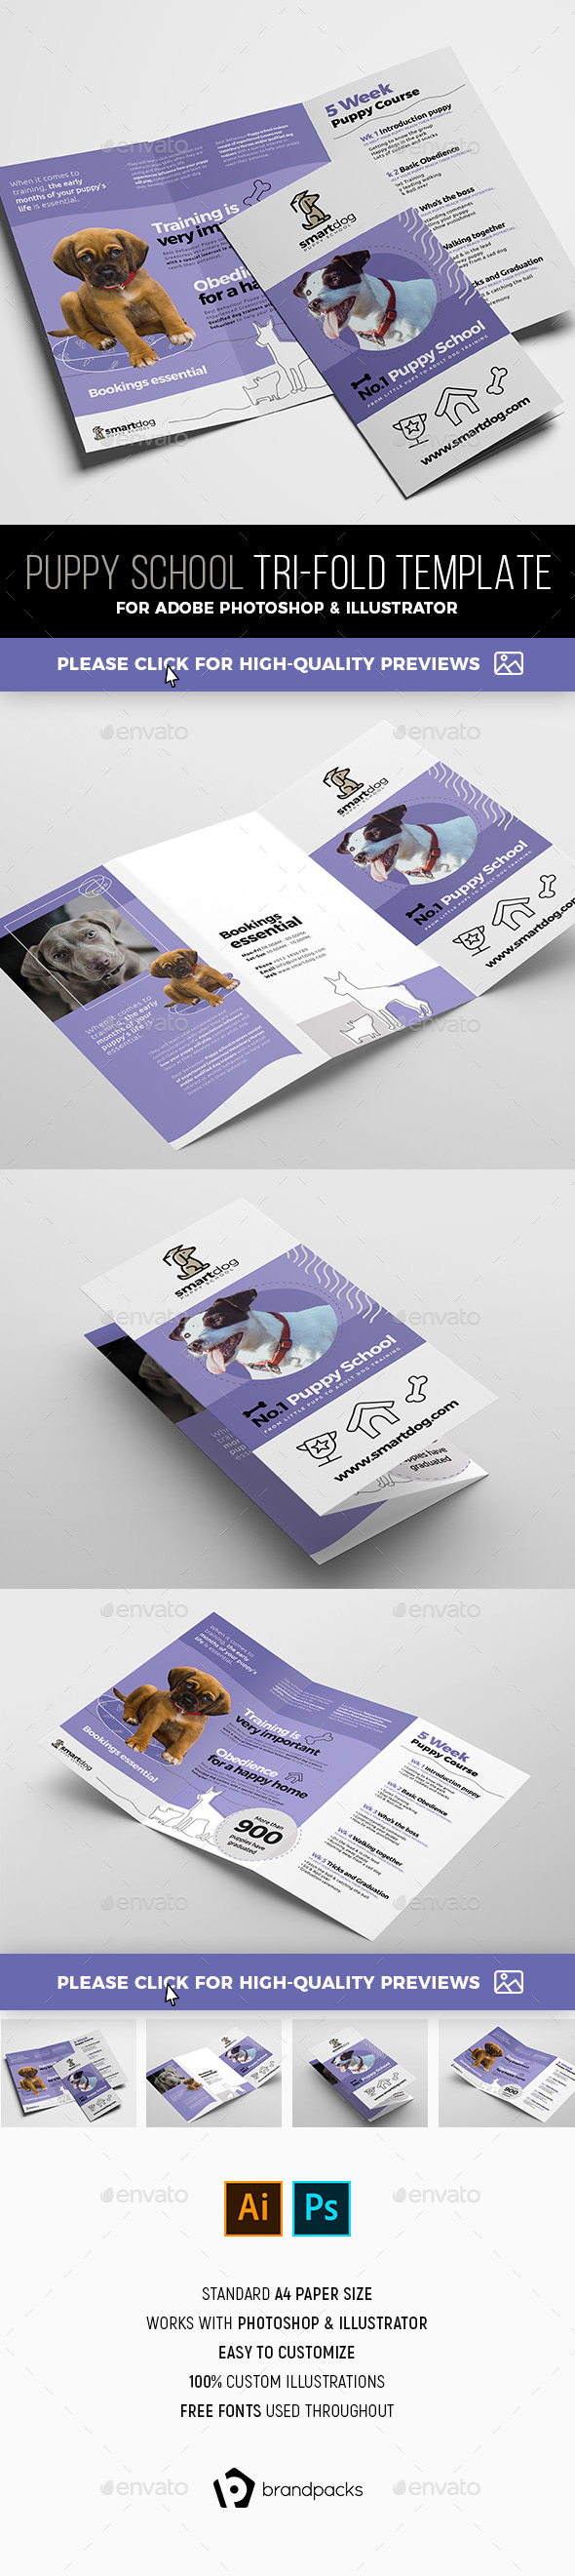 Puppy School Tri-Fold Brochure Template - Corporate Brochures